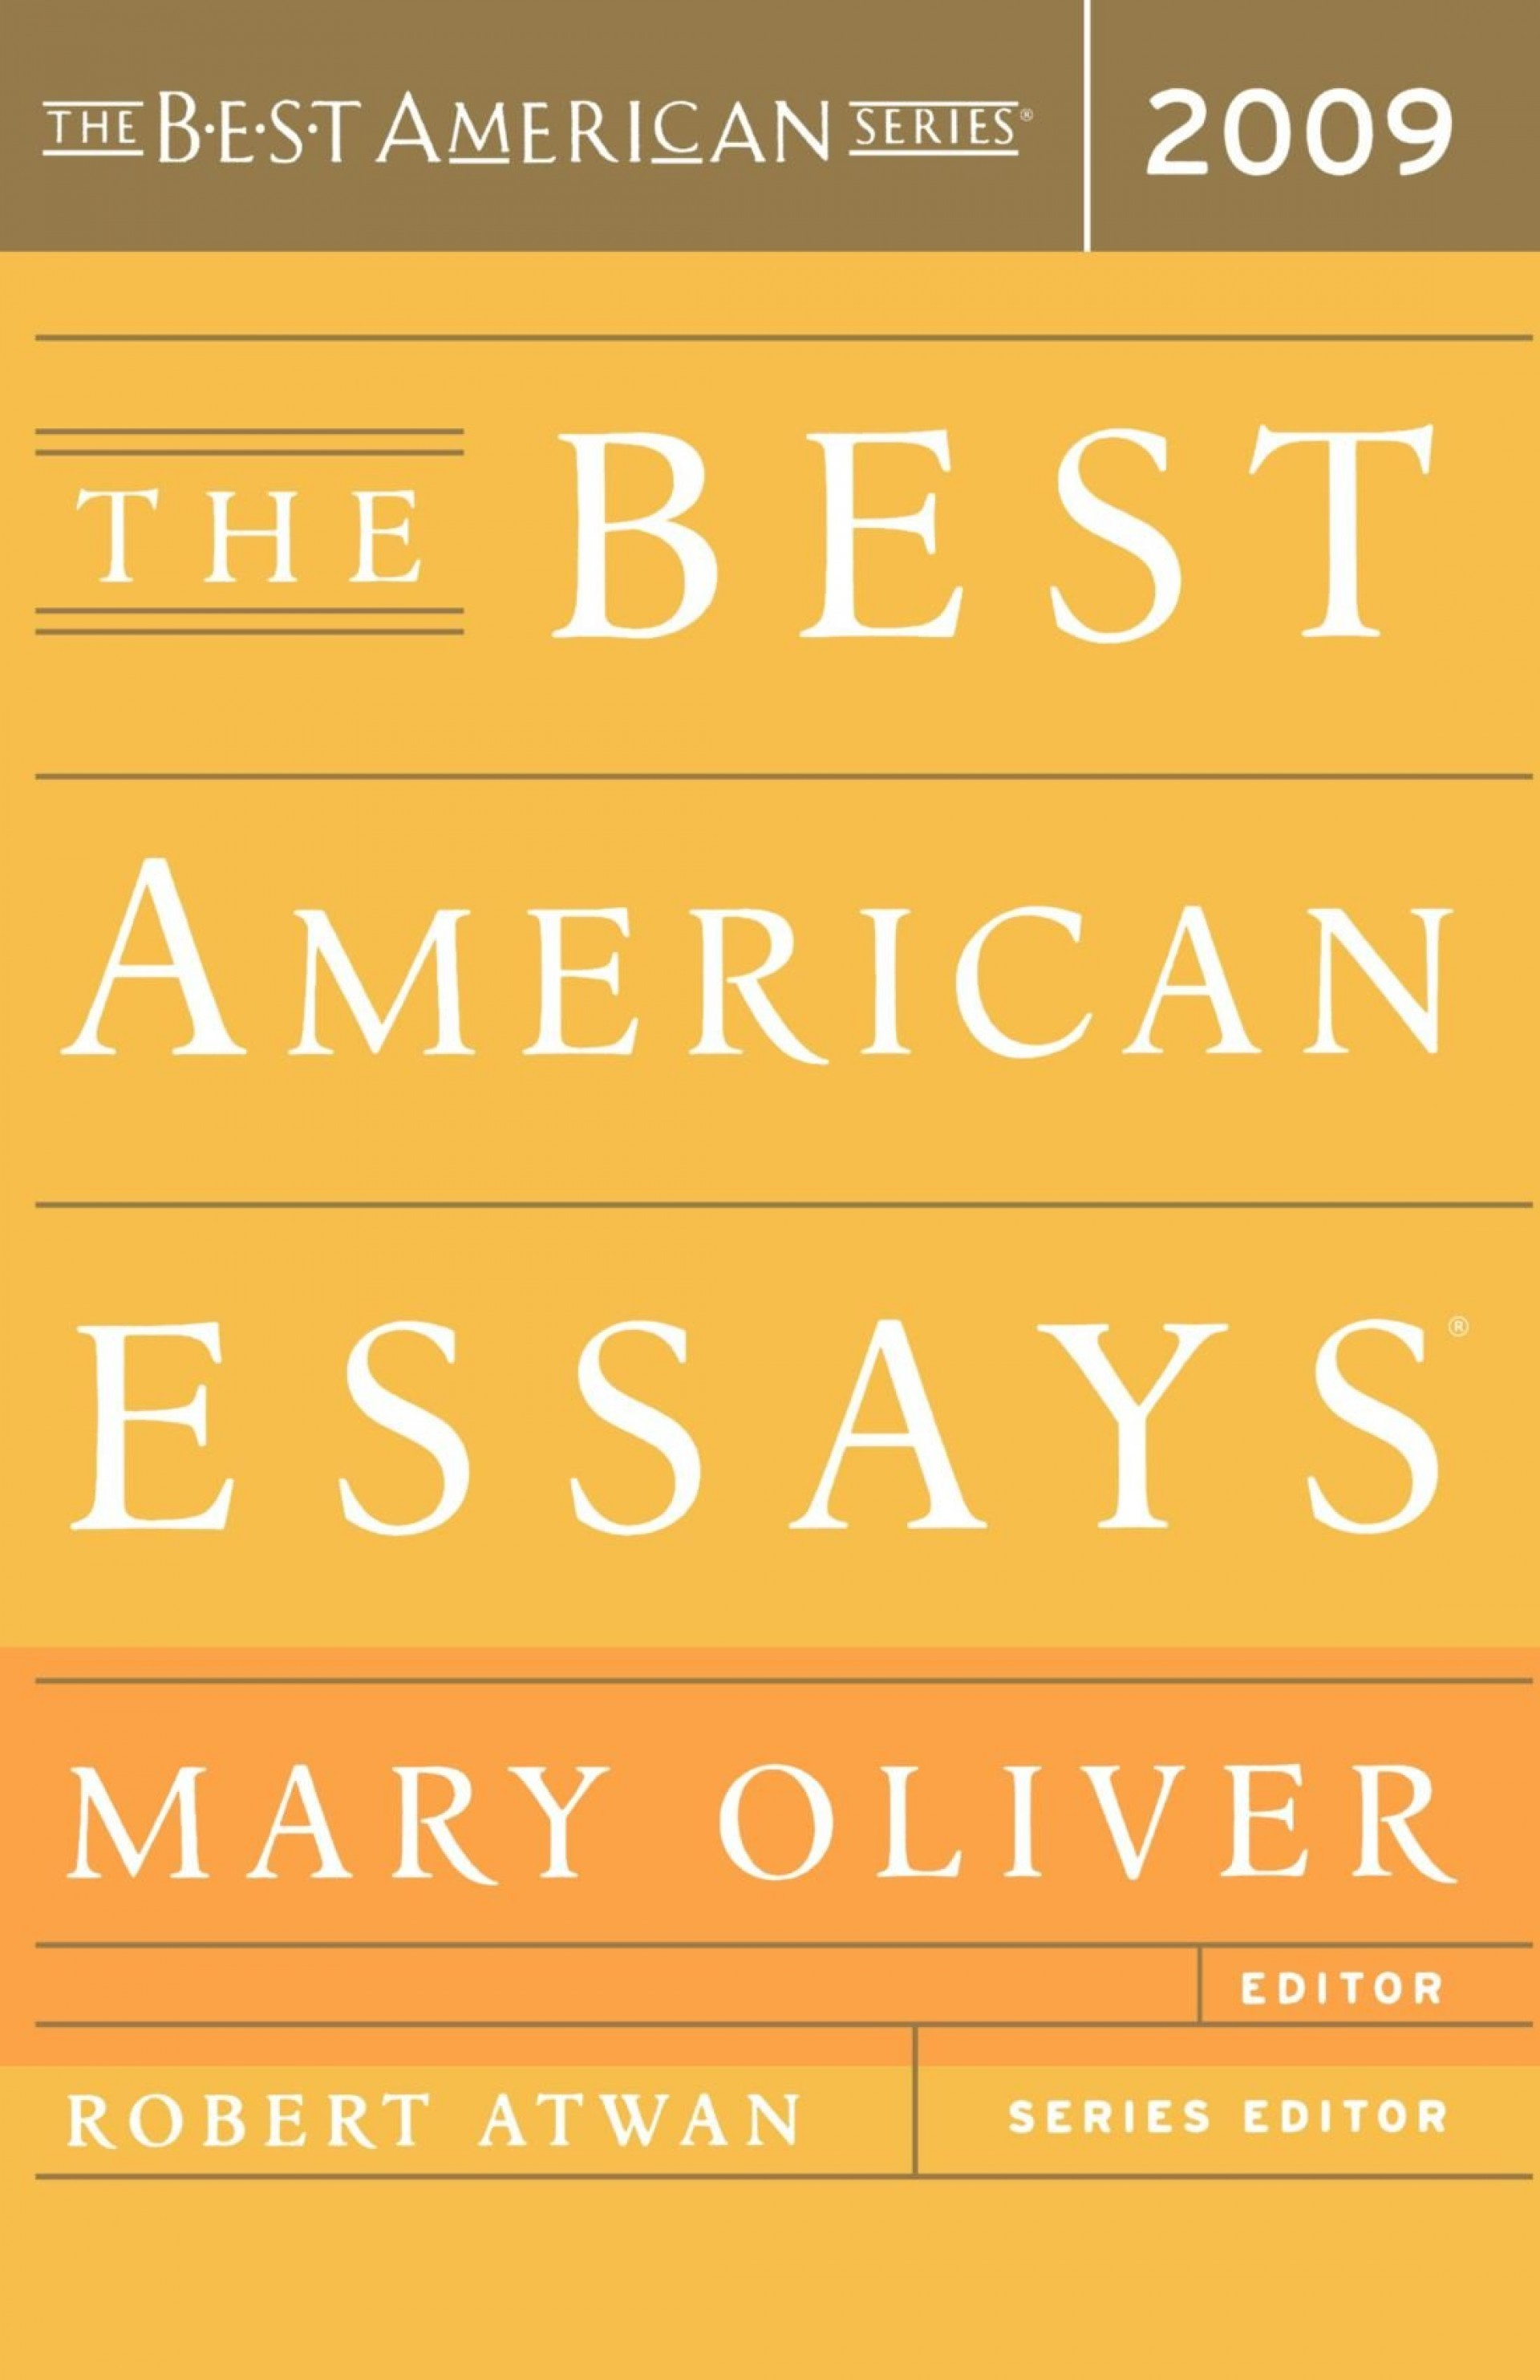 008 617qb5slhfl Essay Example The Best American Wonderful Essays 2018 Pdf 2017 Table Of Contents 2015 Free 1920